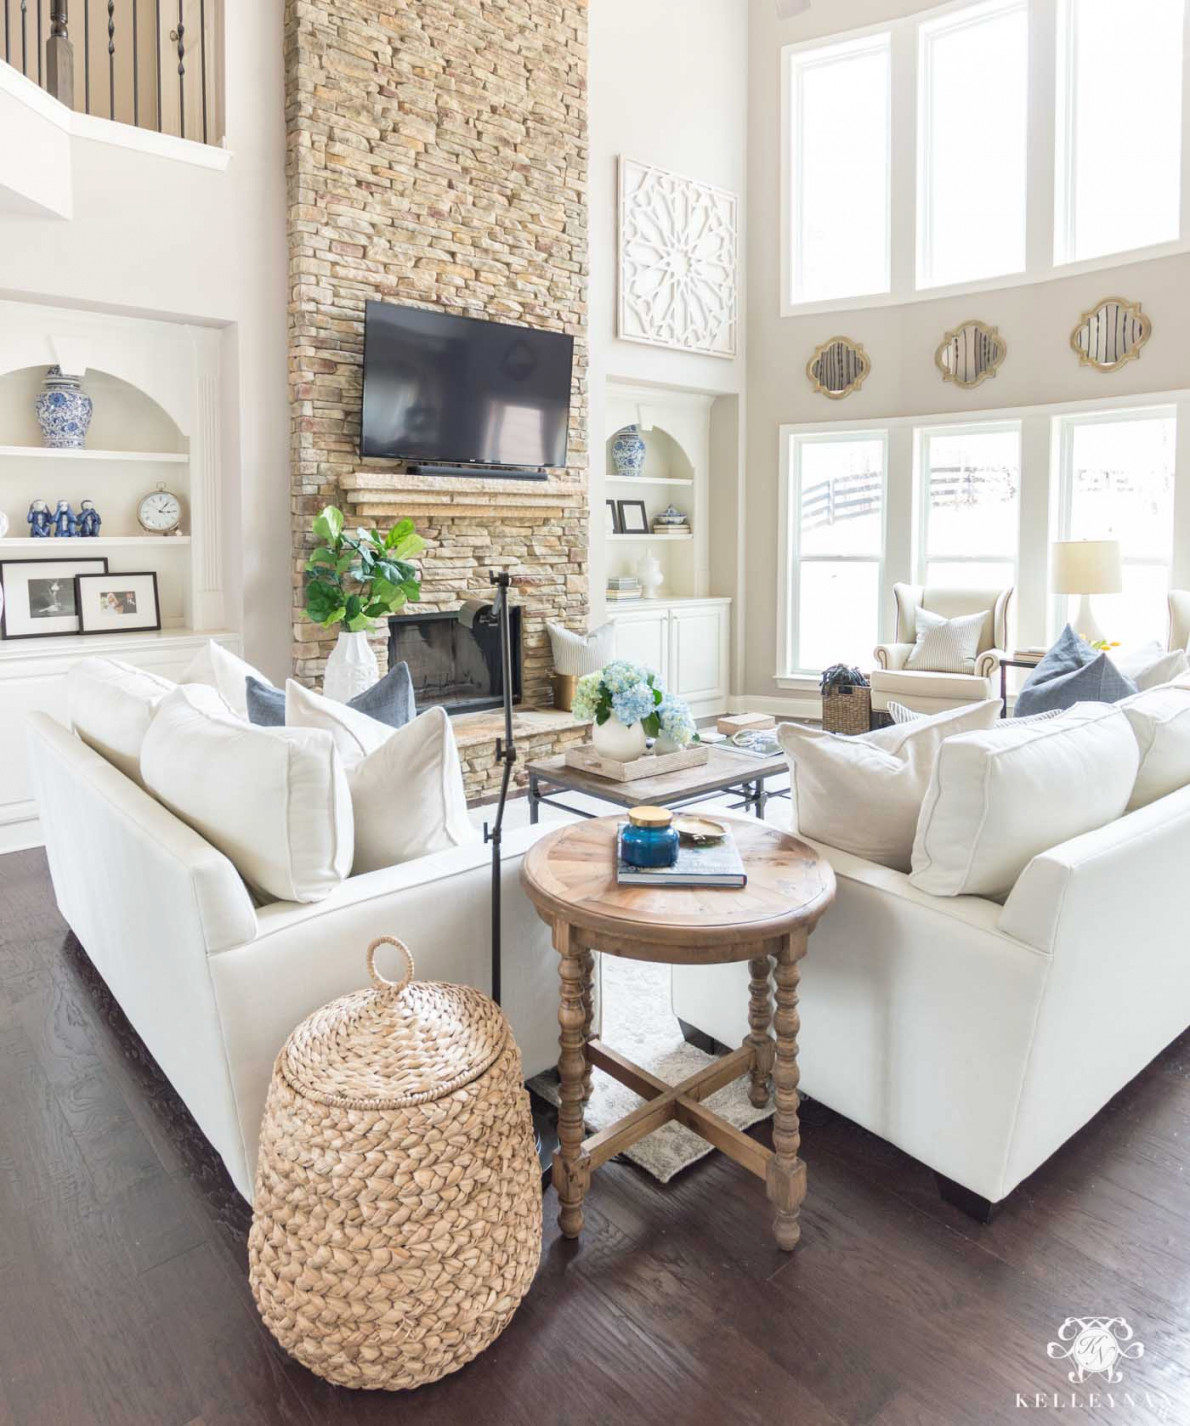 3 Ideas To Conceal Baby Items & Toys In The Living Room with regard to 8+ Amazing Inspiration Ideas For Toy Storage Ideas Living Room